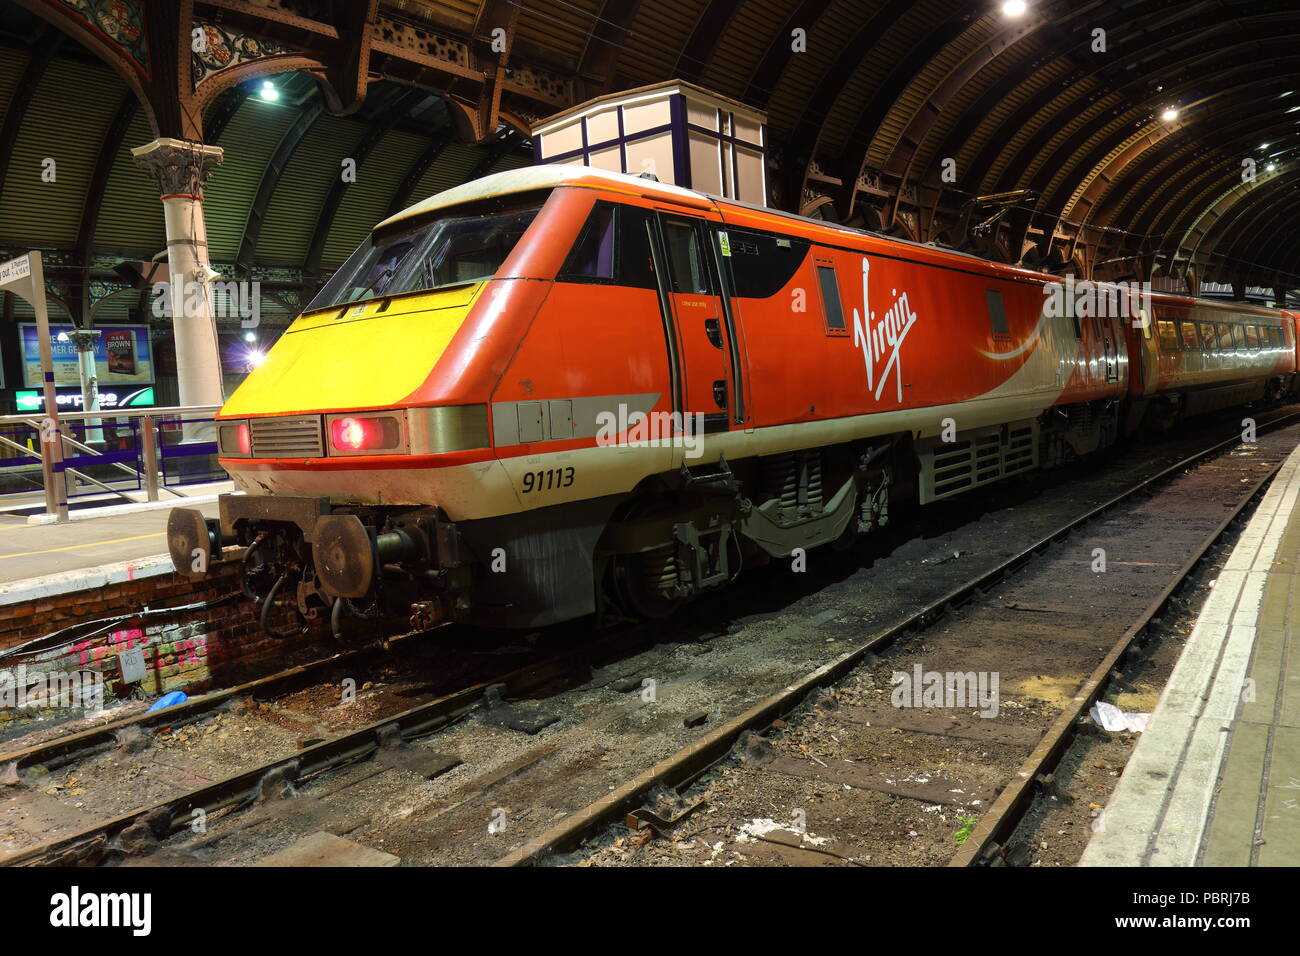 A diesel electric class 91 Virgin train serial number 91113 sits stationary at York Railway Station - Stock Image